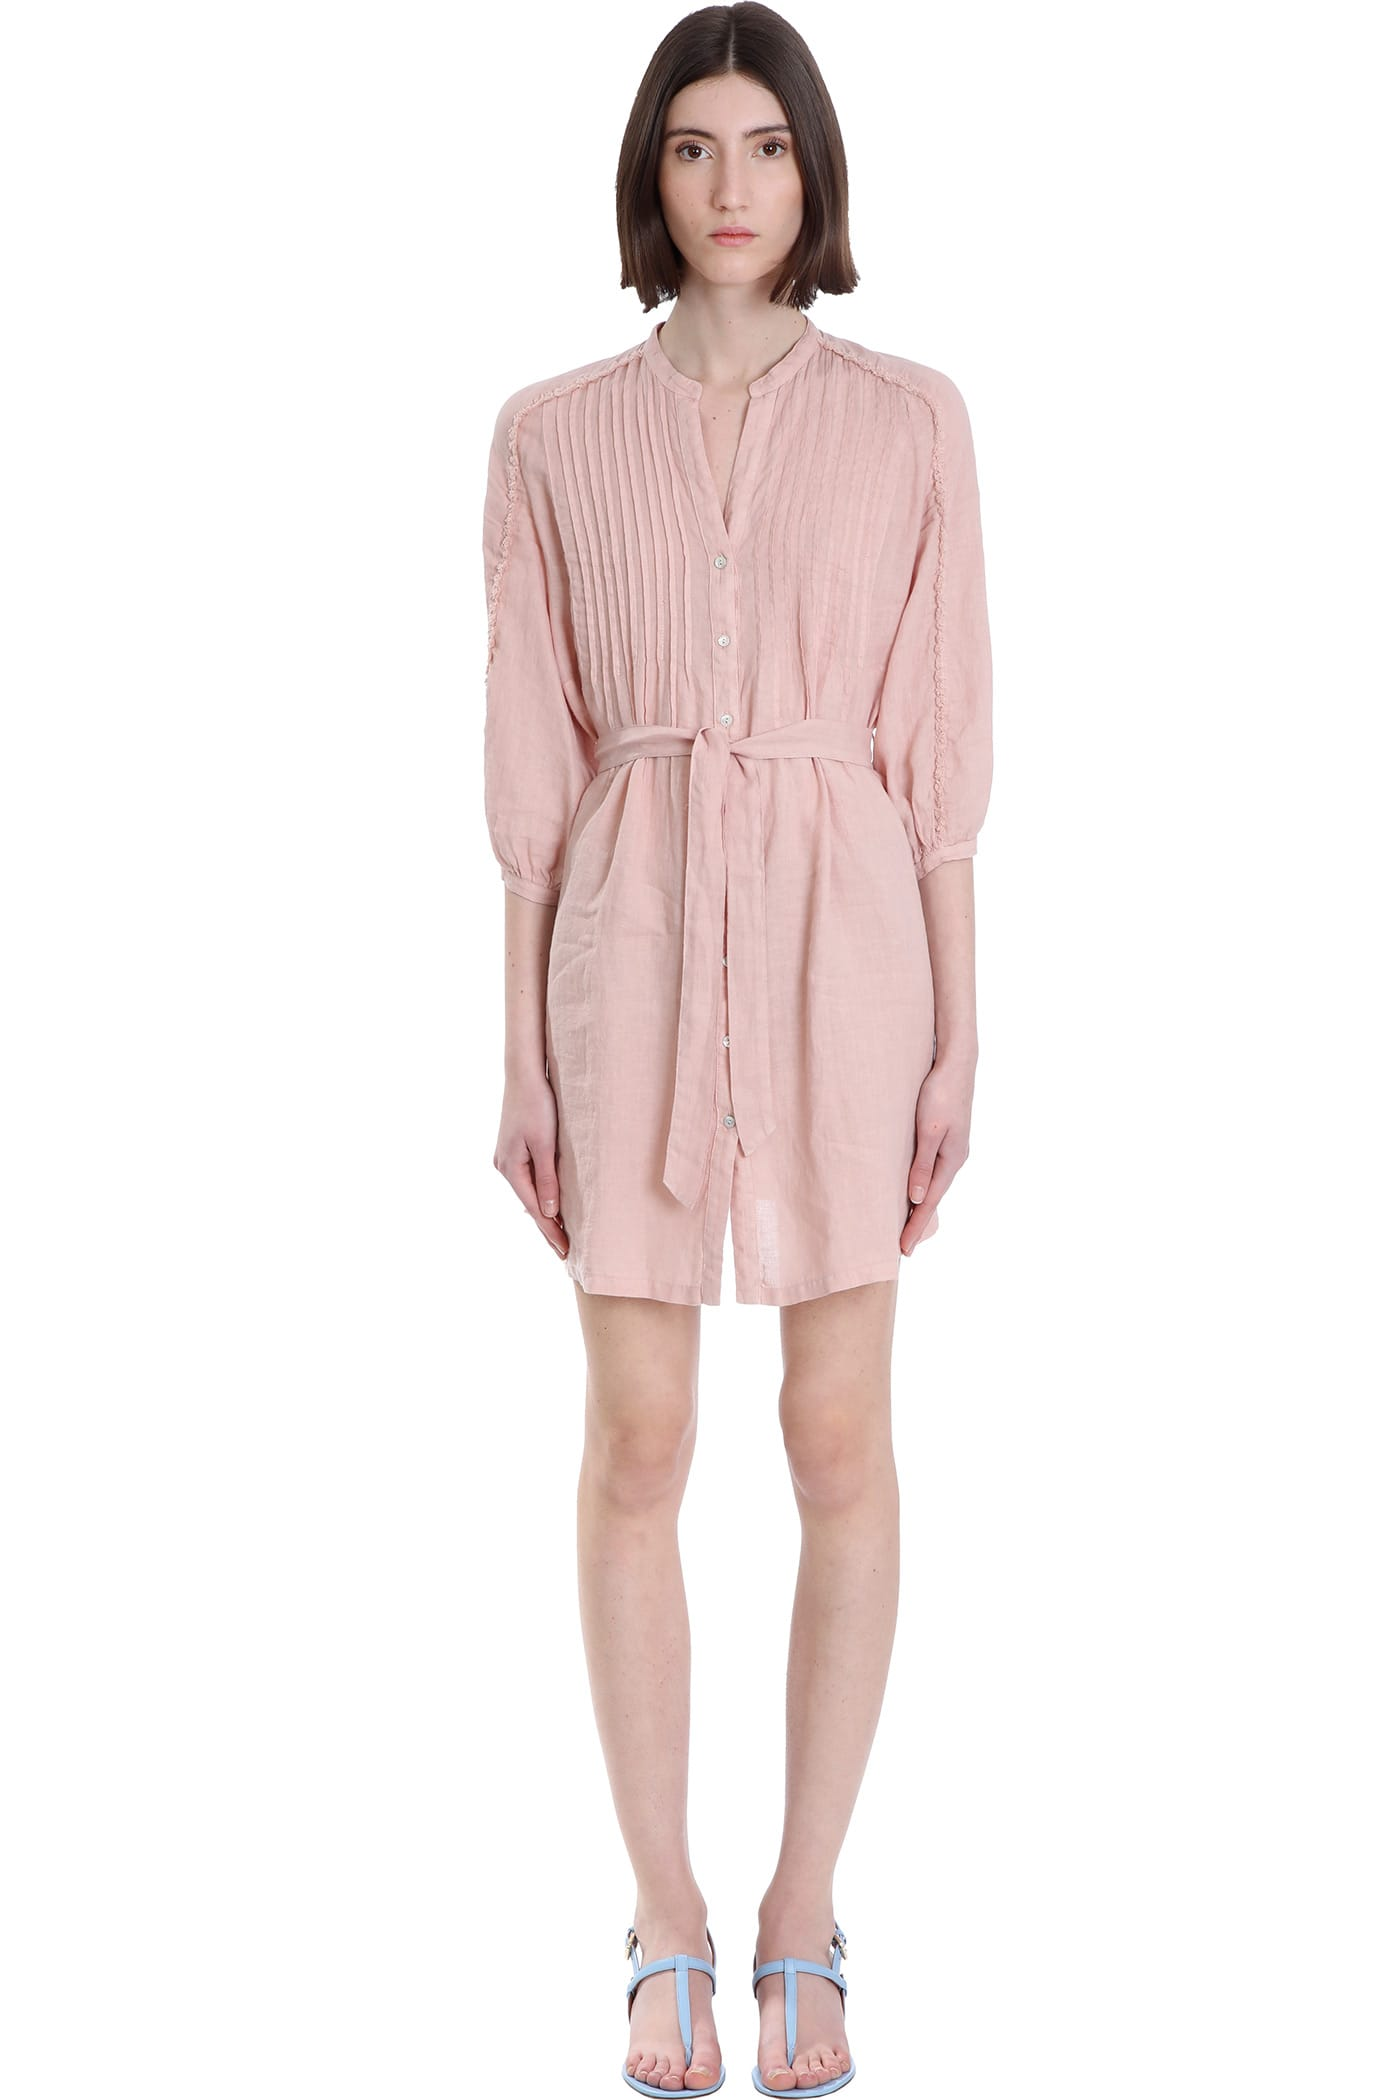 Buy 120% Lino Dress In Rose-pink Linen online, shop 120 Lino with free shipping